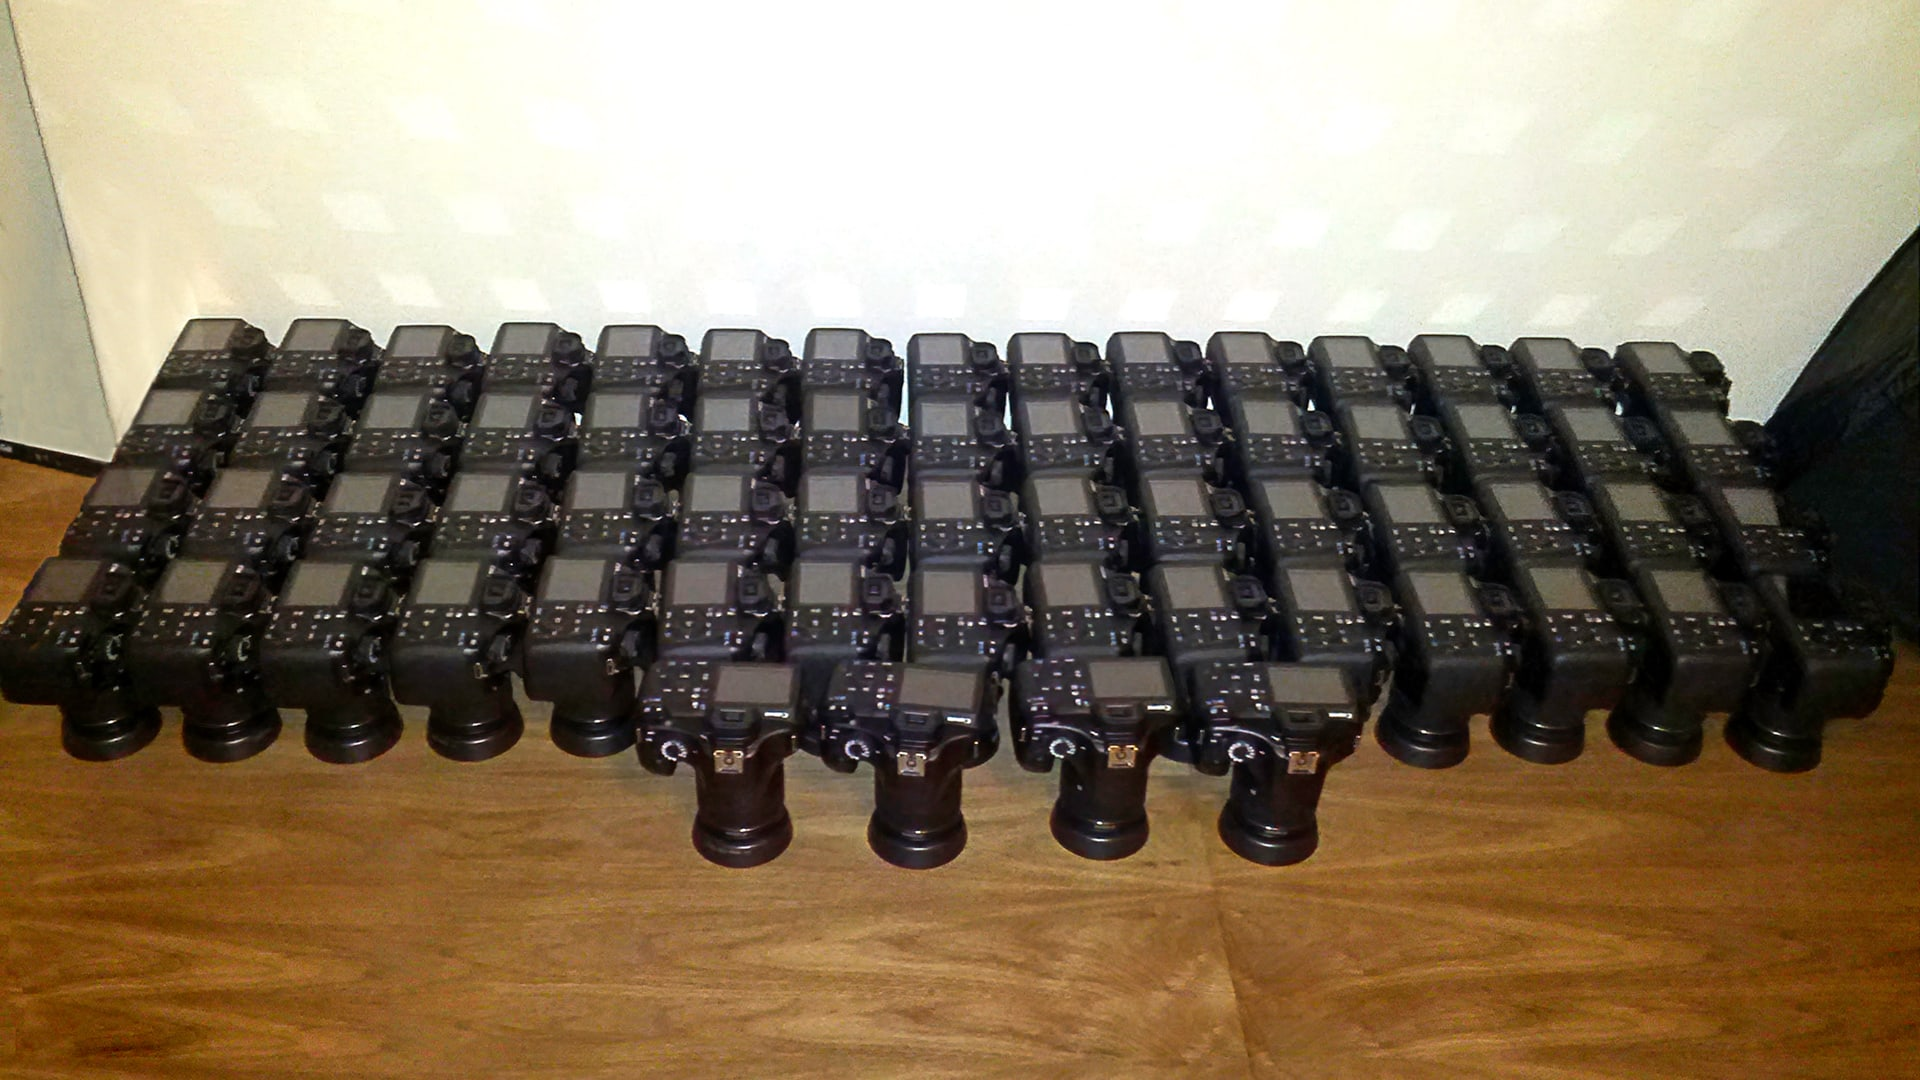 64 DSLR Cameras on a table